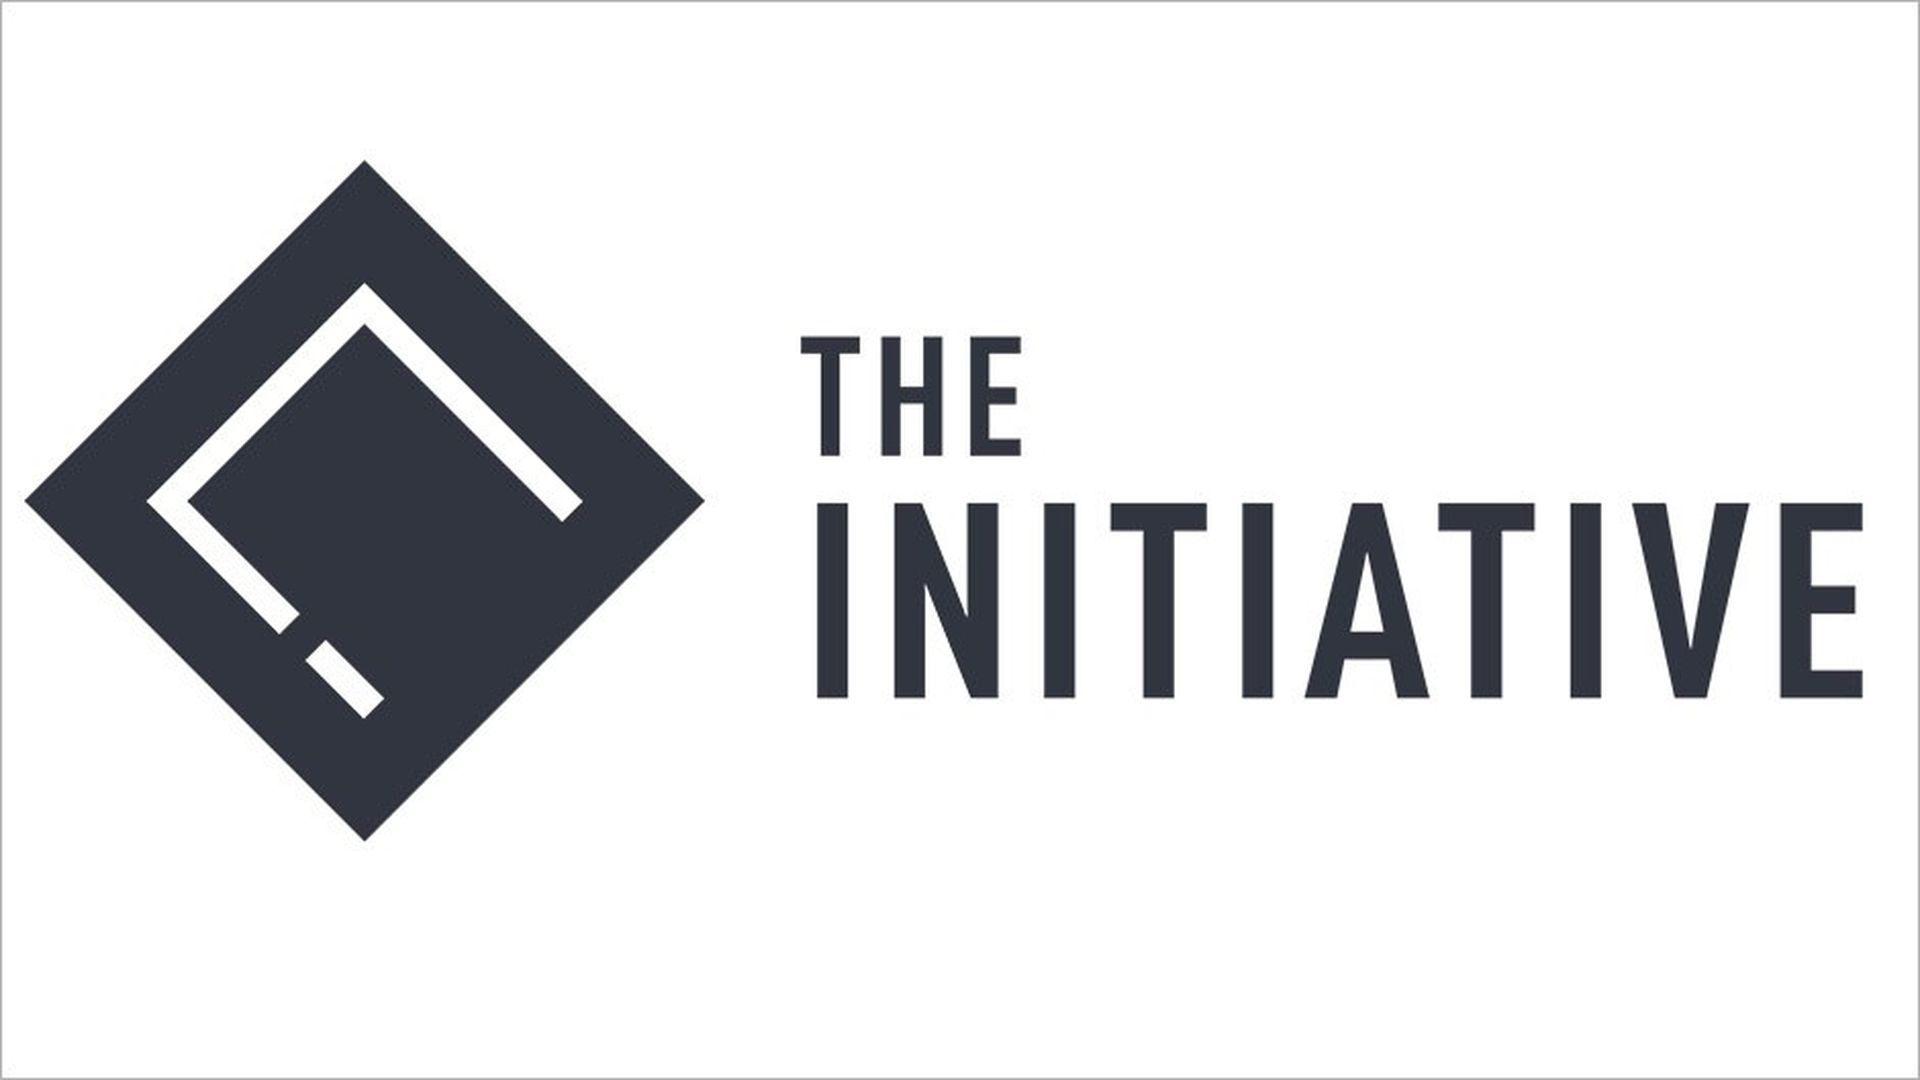 Microsoft S The Initiative Is Working On A Crazy